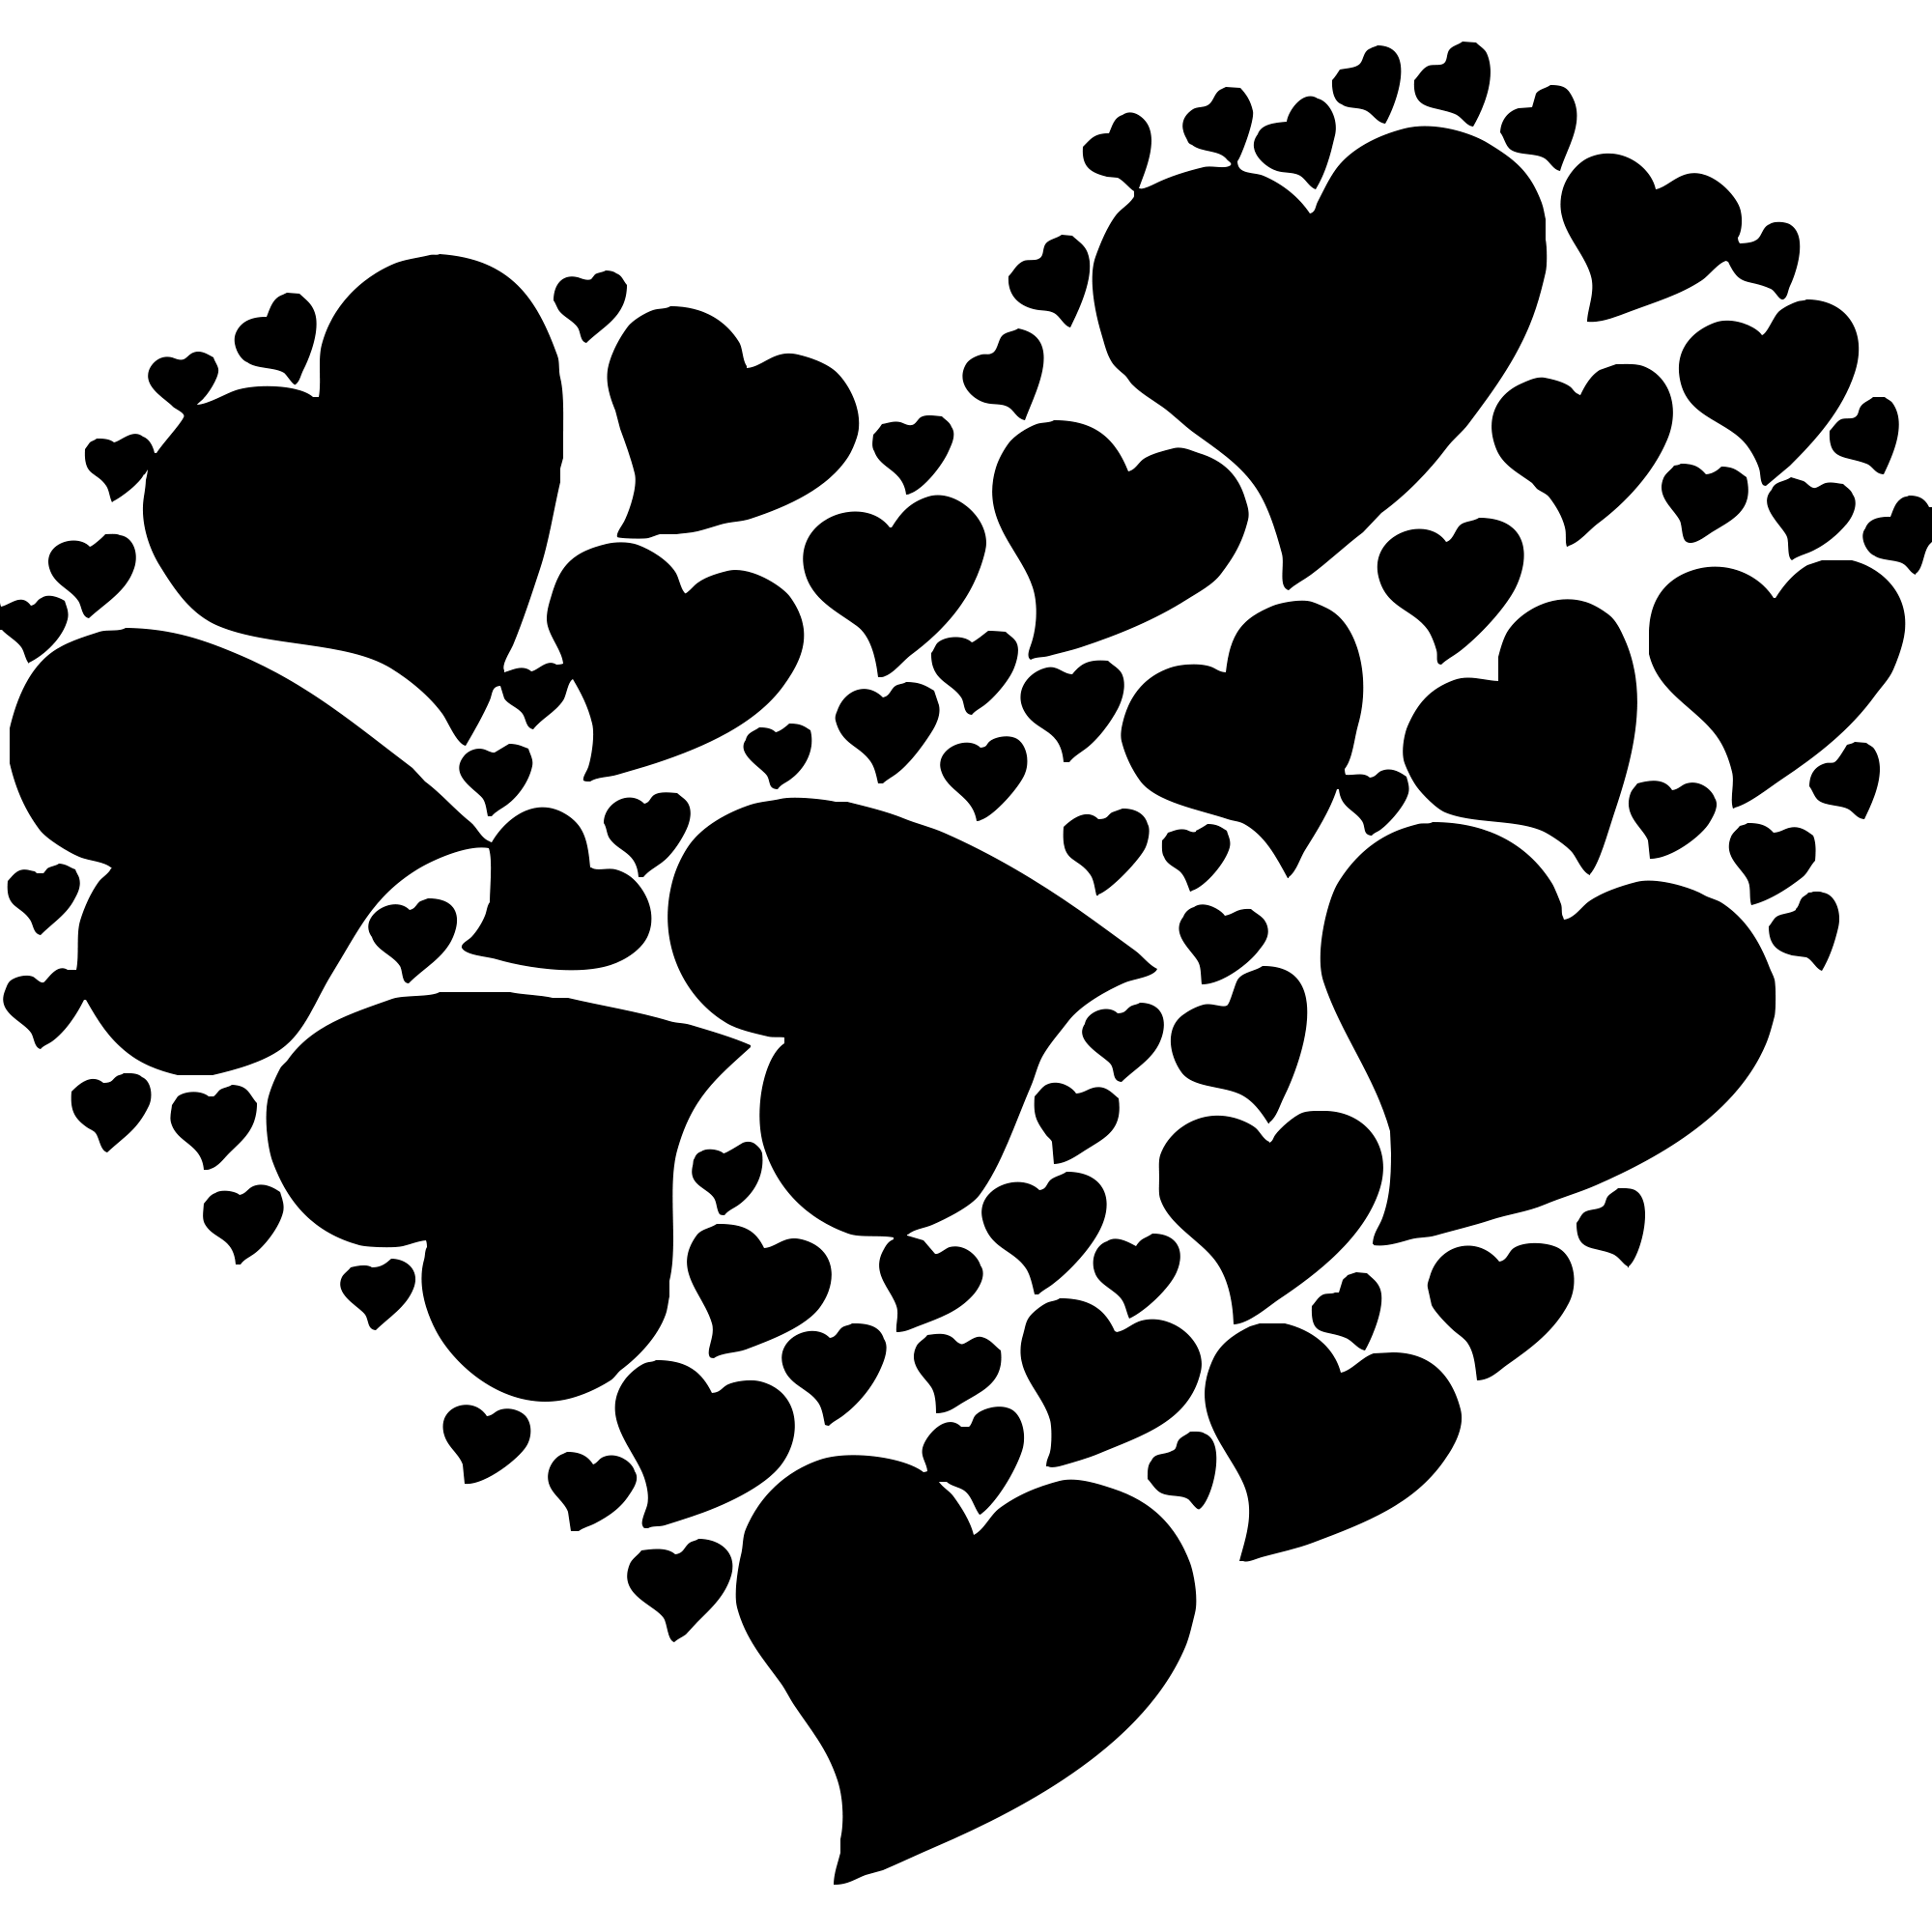 heart pictures all the words what does black heart emoji mean pictures heart